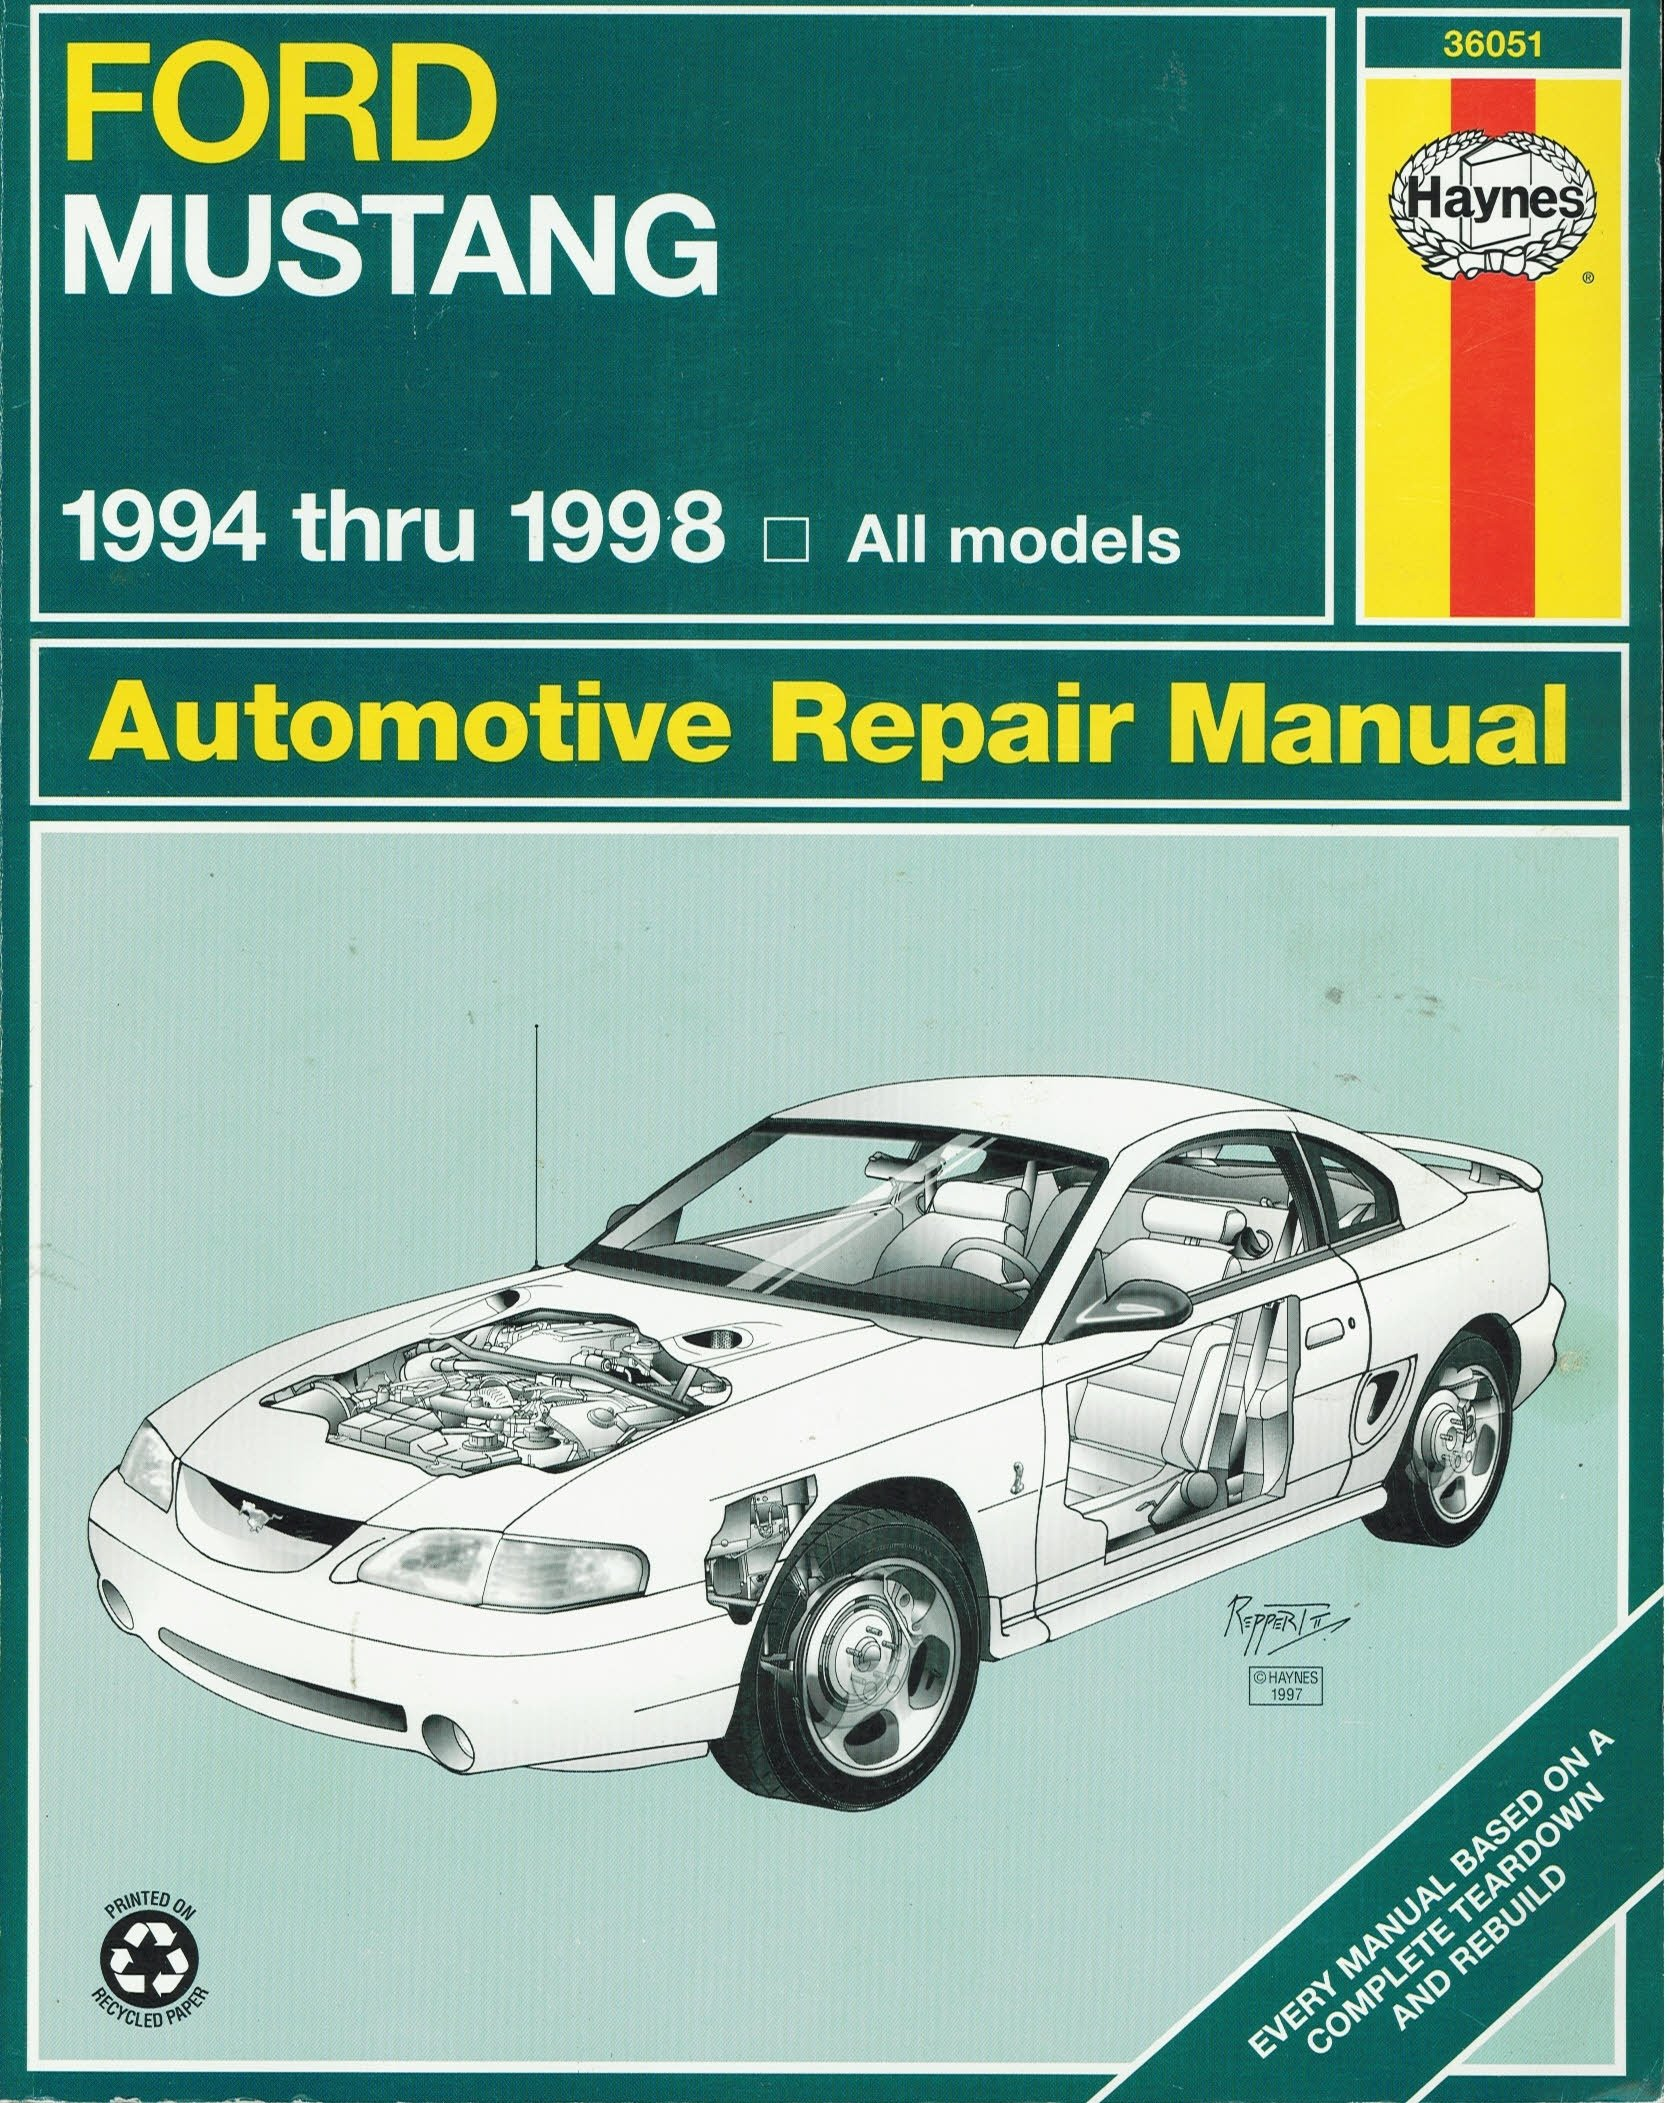 Haynes Ford Mustang: 1994 Thru 1998 (Haynes Automotive Repair Manuals):  Haynes Editors: 9781563923241: Amazon.com: Books